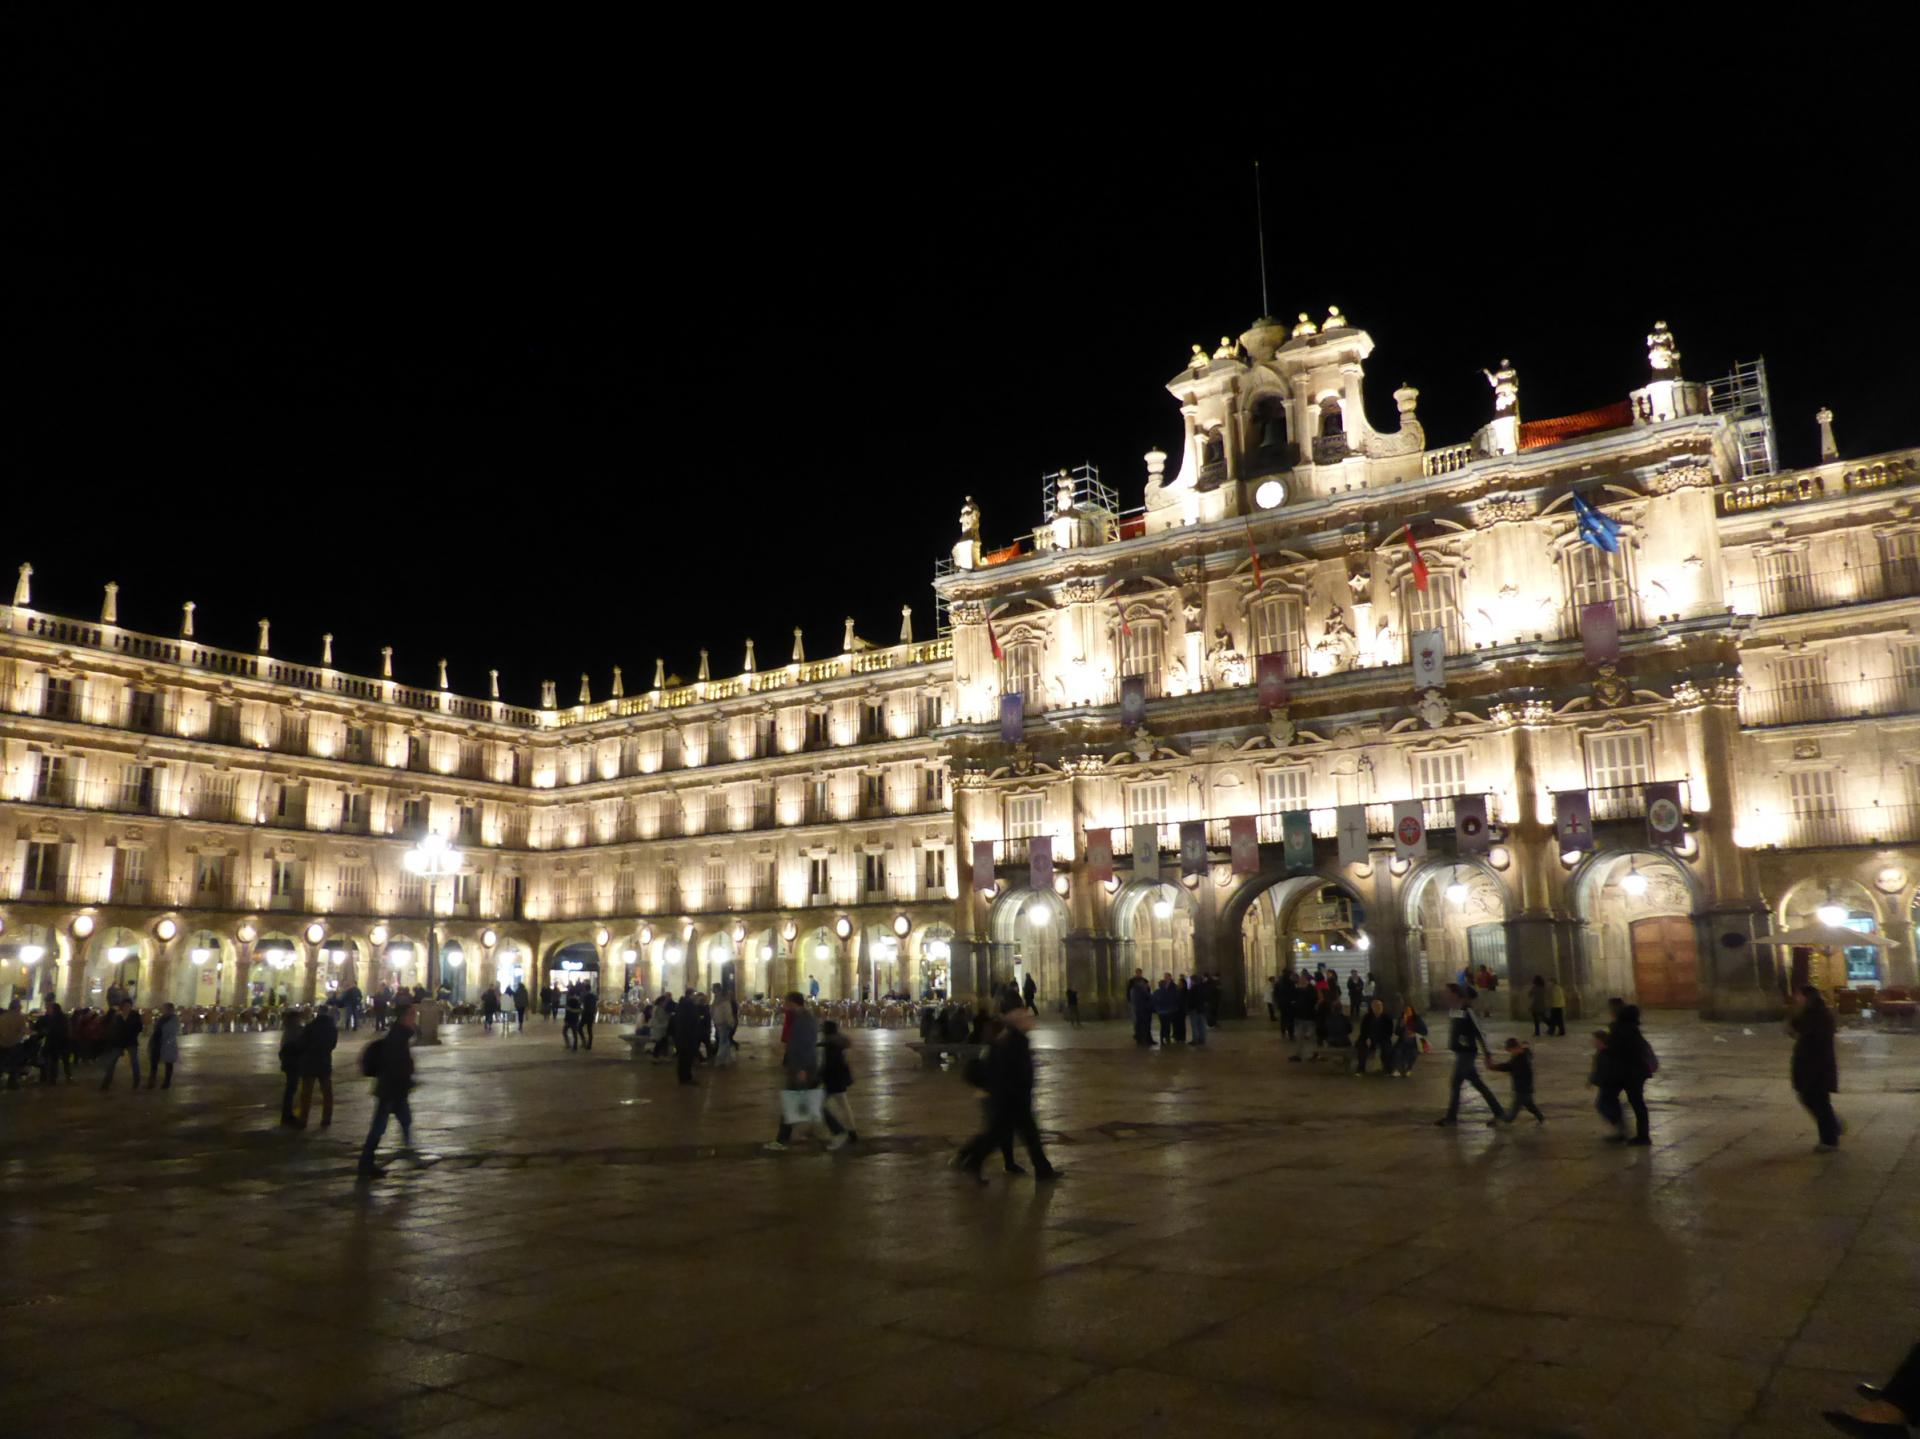 Plaza Mayor, XVIIIe siècle, cl. Ph. Cachau